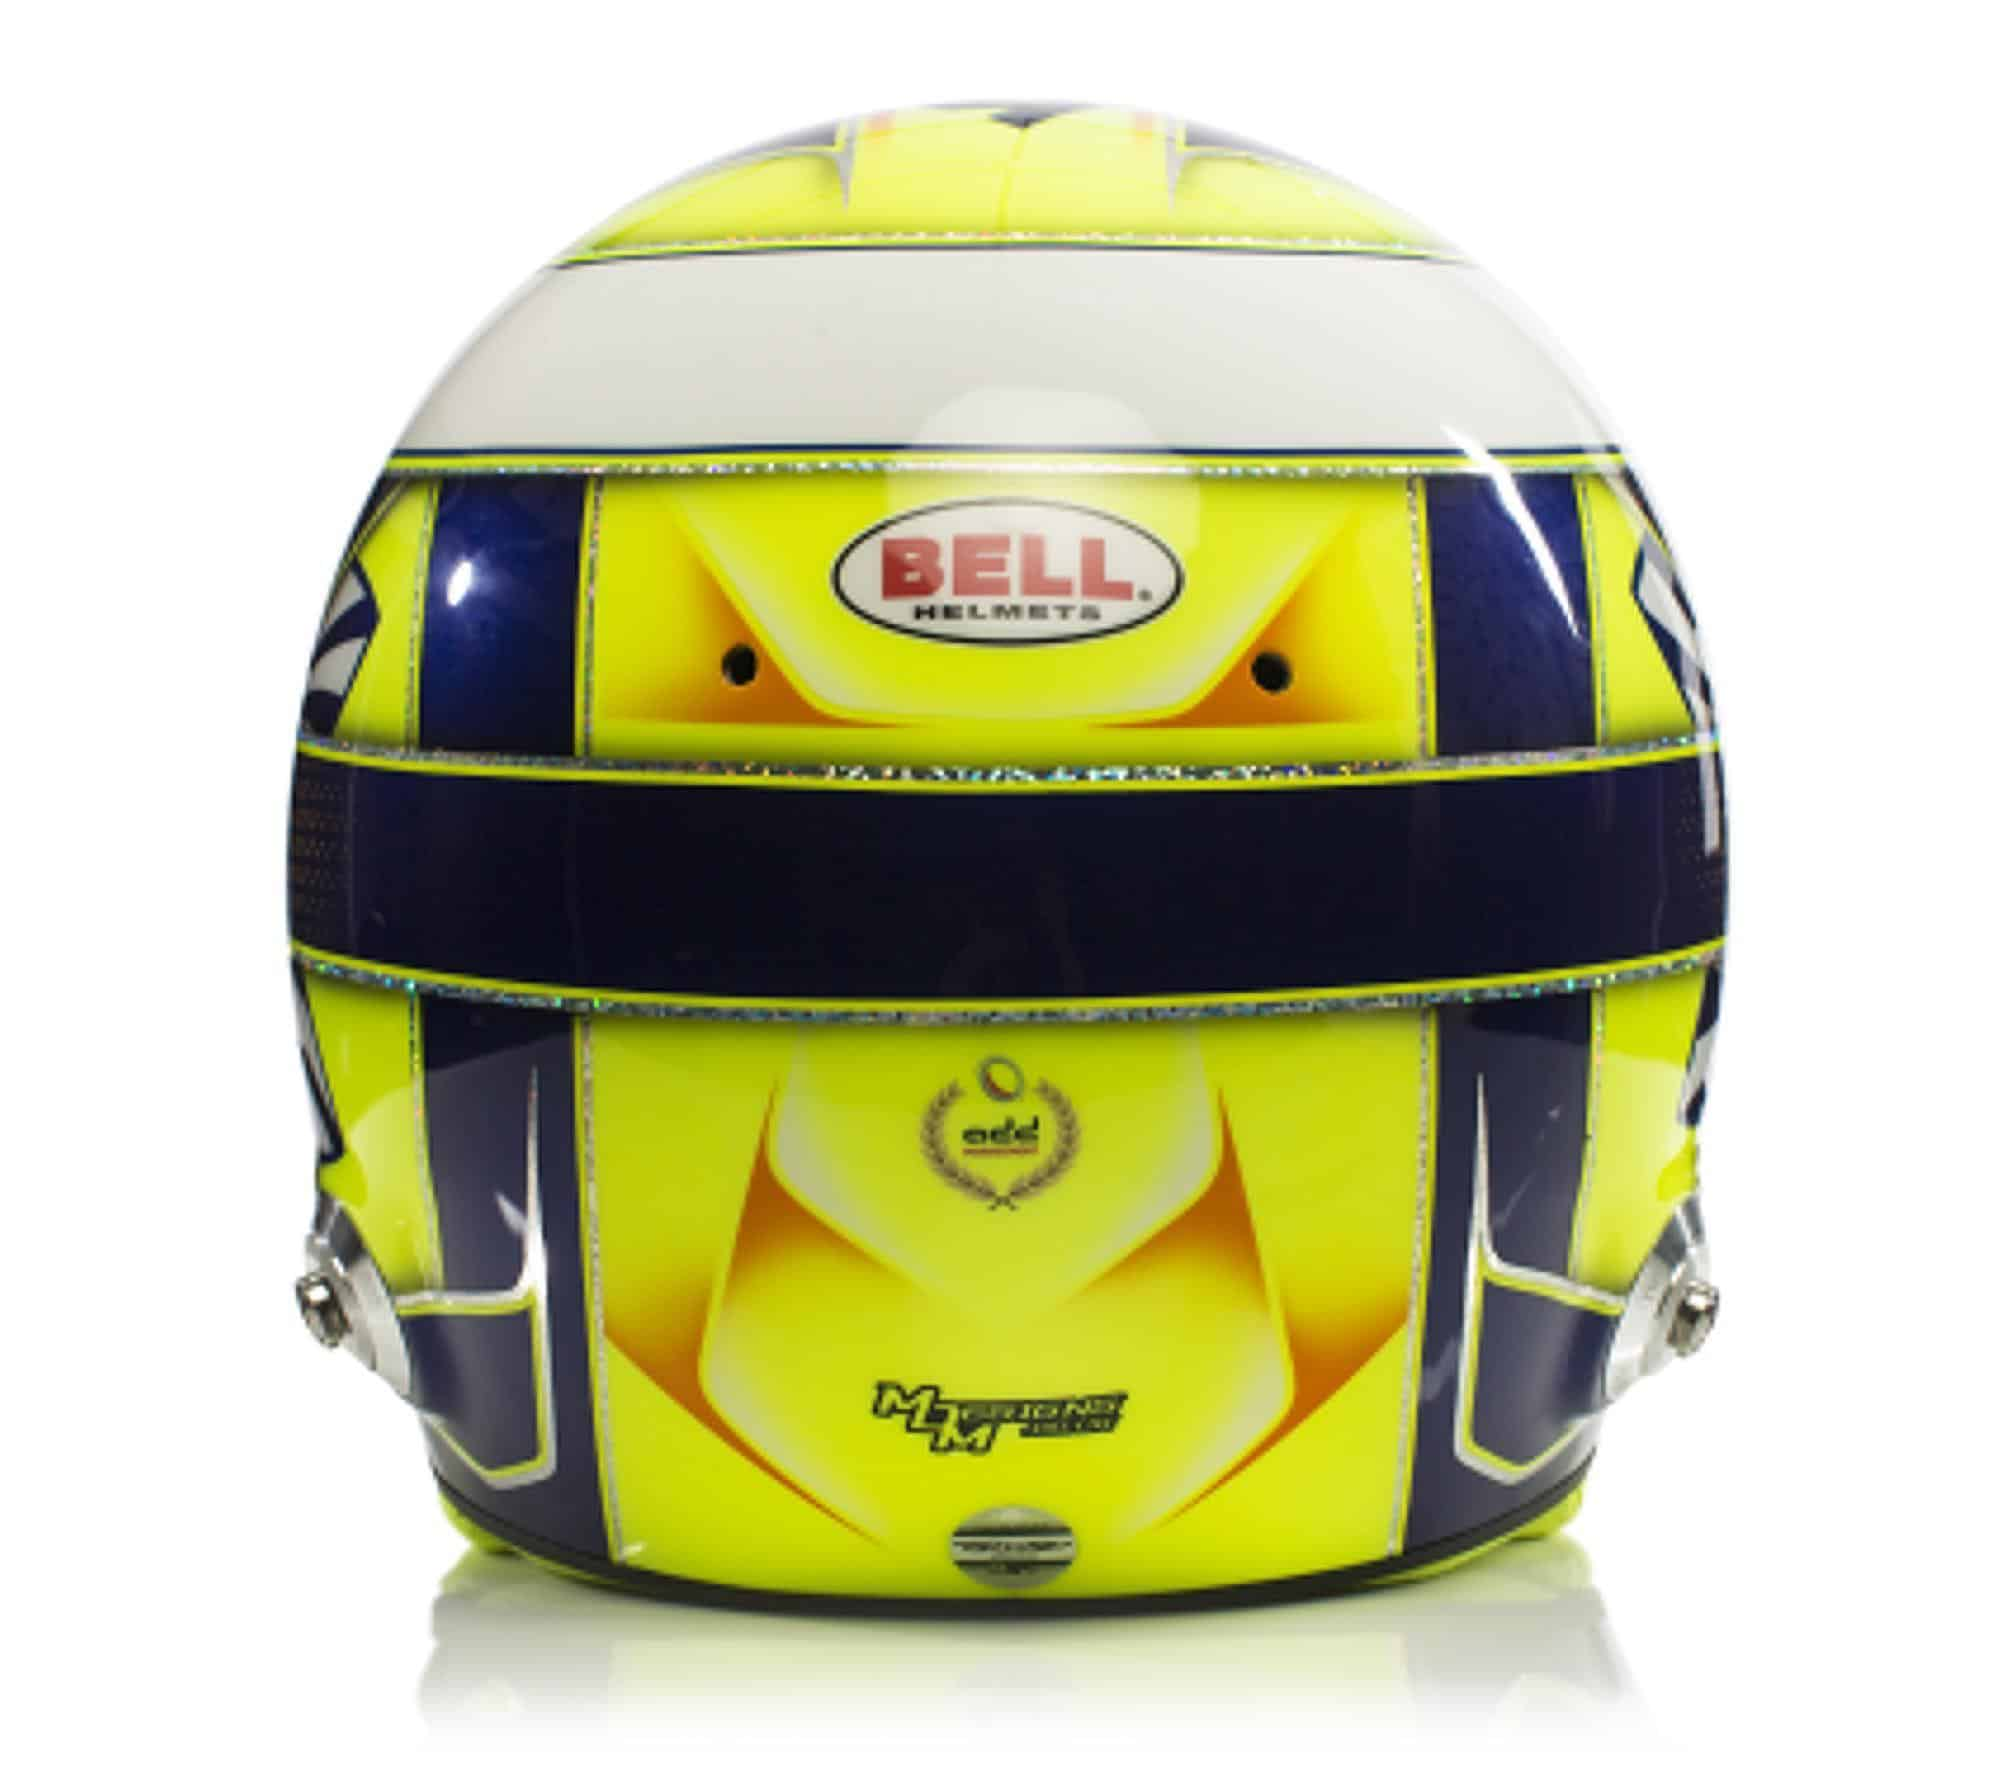 2019 F1 Lando Norris helmet McLaren Renault rear Photo McLaren Edited by MAXF1net